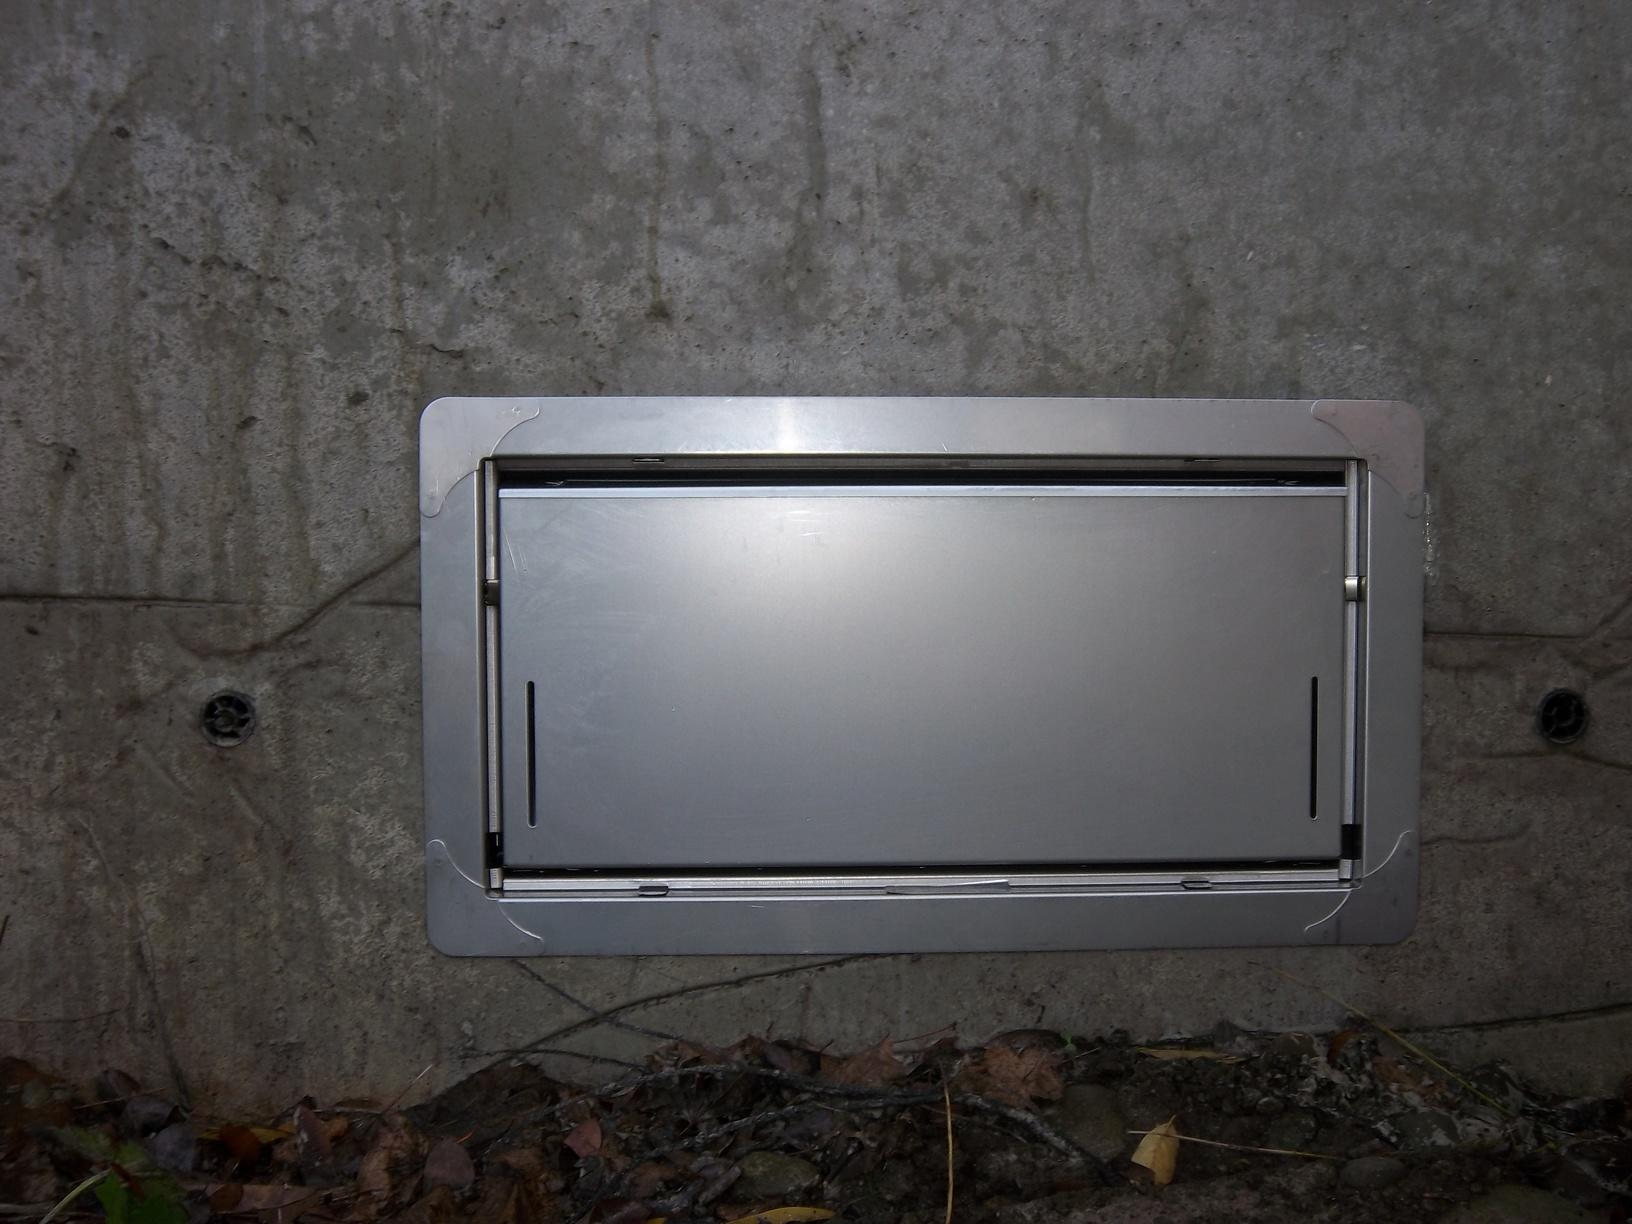 Crawl Space Vent Cover in Bucoda, Washington - After Photo